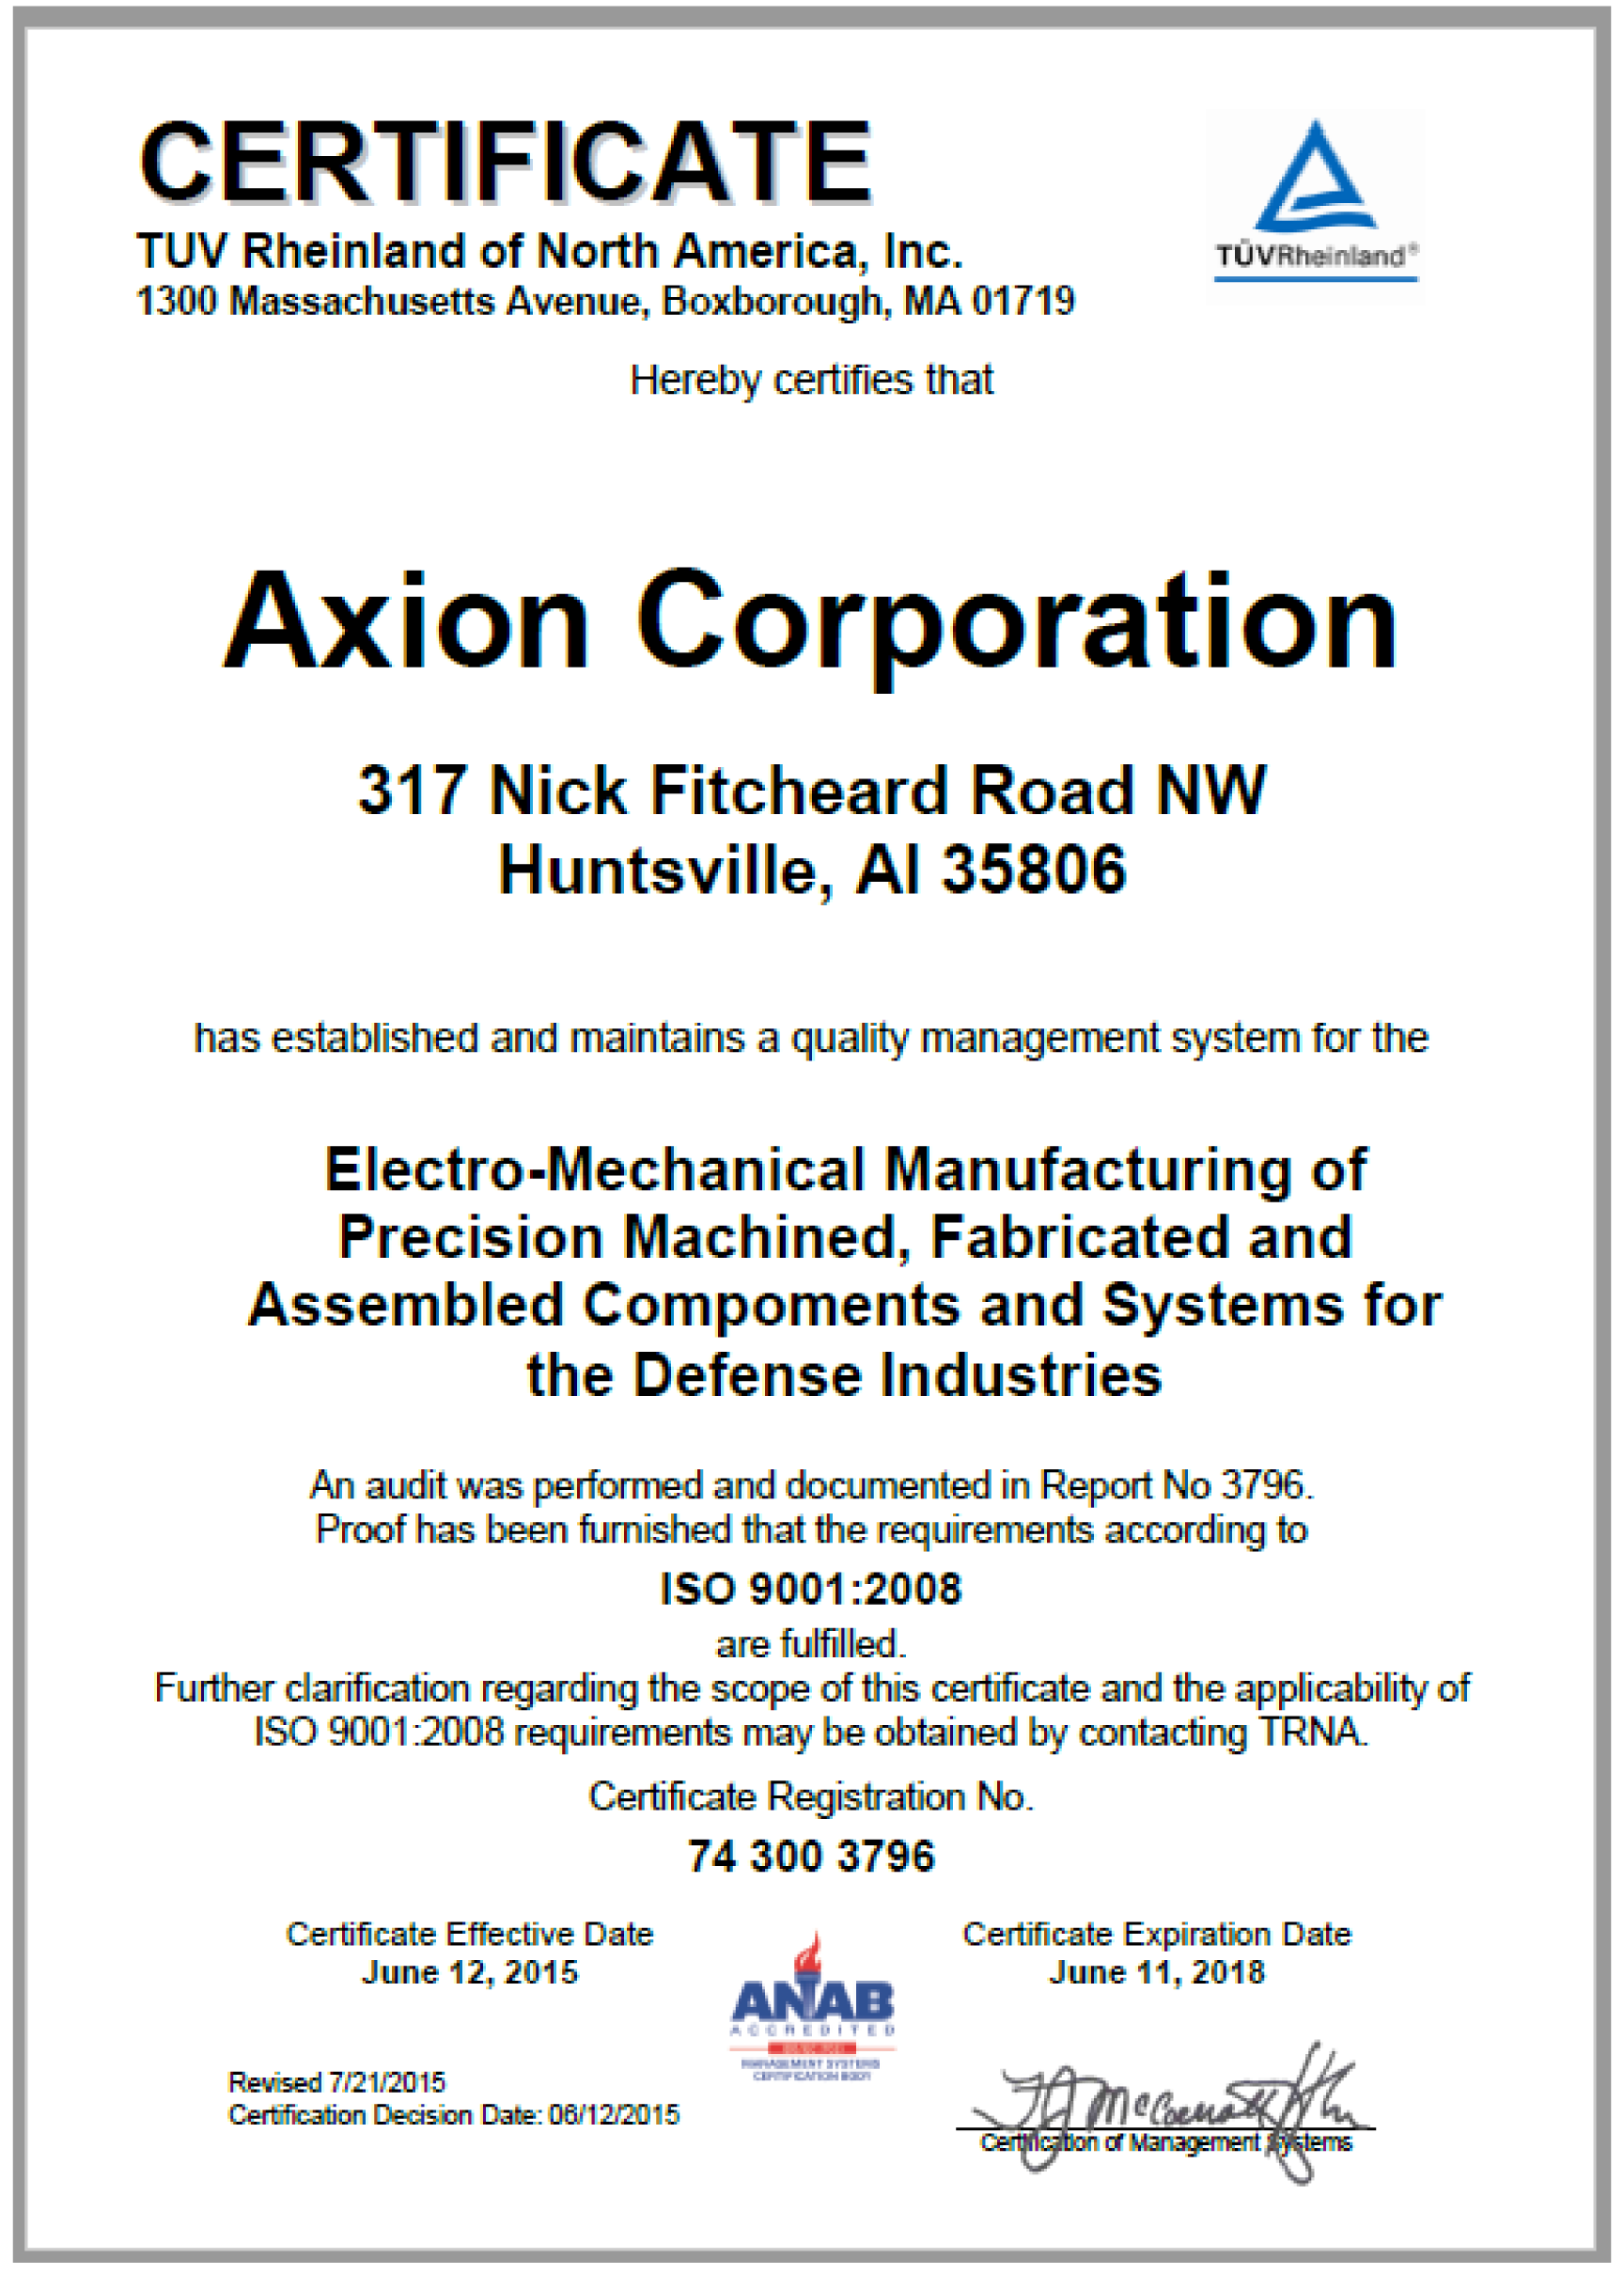 axion corporation, axion, sba, wosb, woman owned business, naob, native american owned business, iso 90001: 2015 ceritited, prime defense contractor, dod contractor, defense solutions, innovative technology, dem design, build to print manufactoring, huntsville al, us government, ground vehicle, air craft, combat weapon systems, CAGE: 9X850, aerospace & defence industry, us government contractor